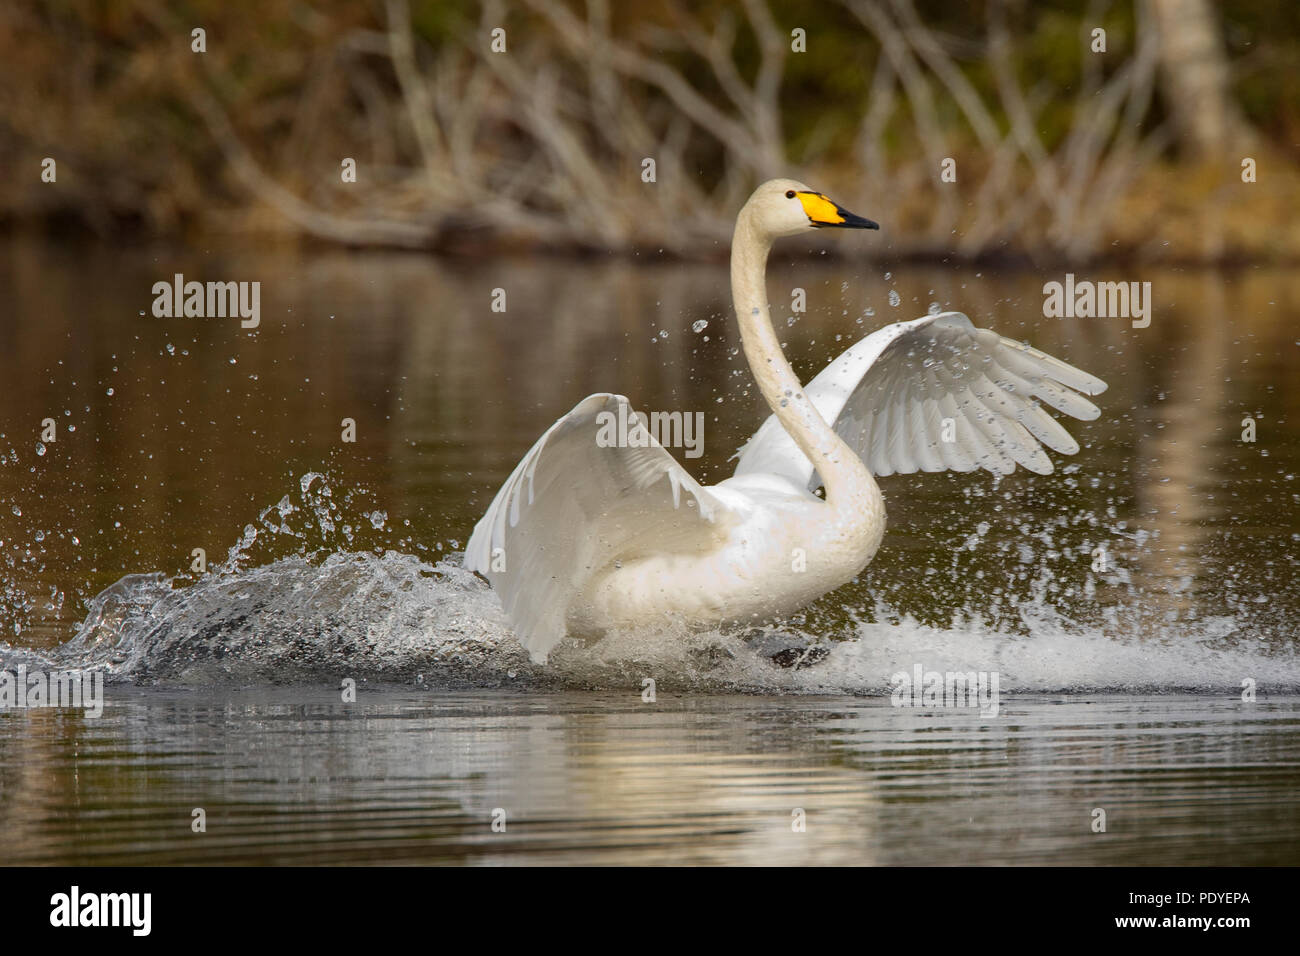 Wilde zwaan met landing op het water.Whooper Swan making a landing on the water. - Stock Image